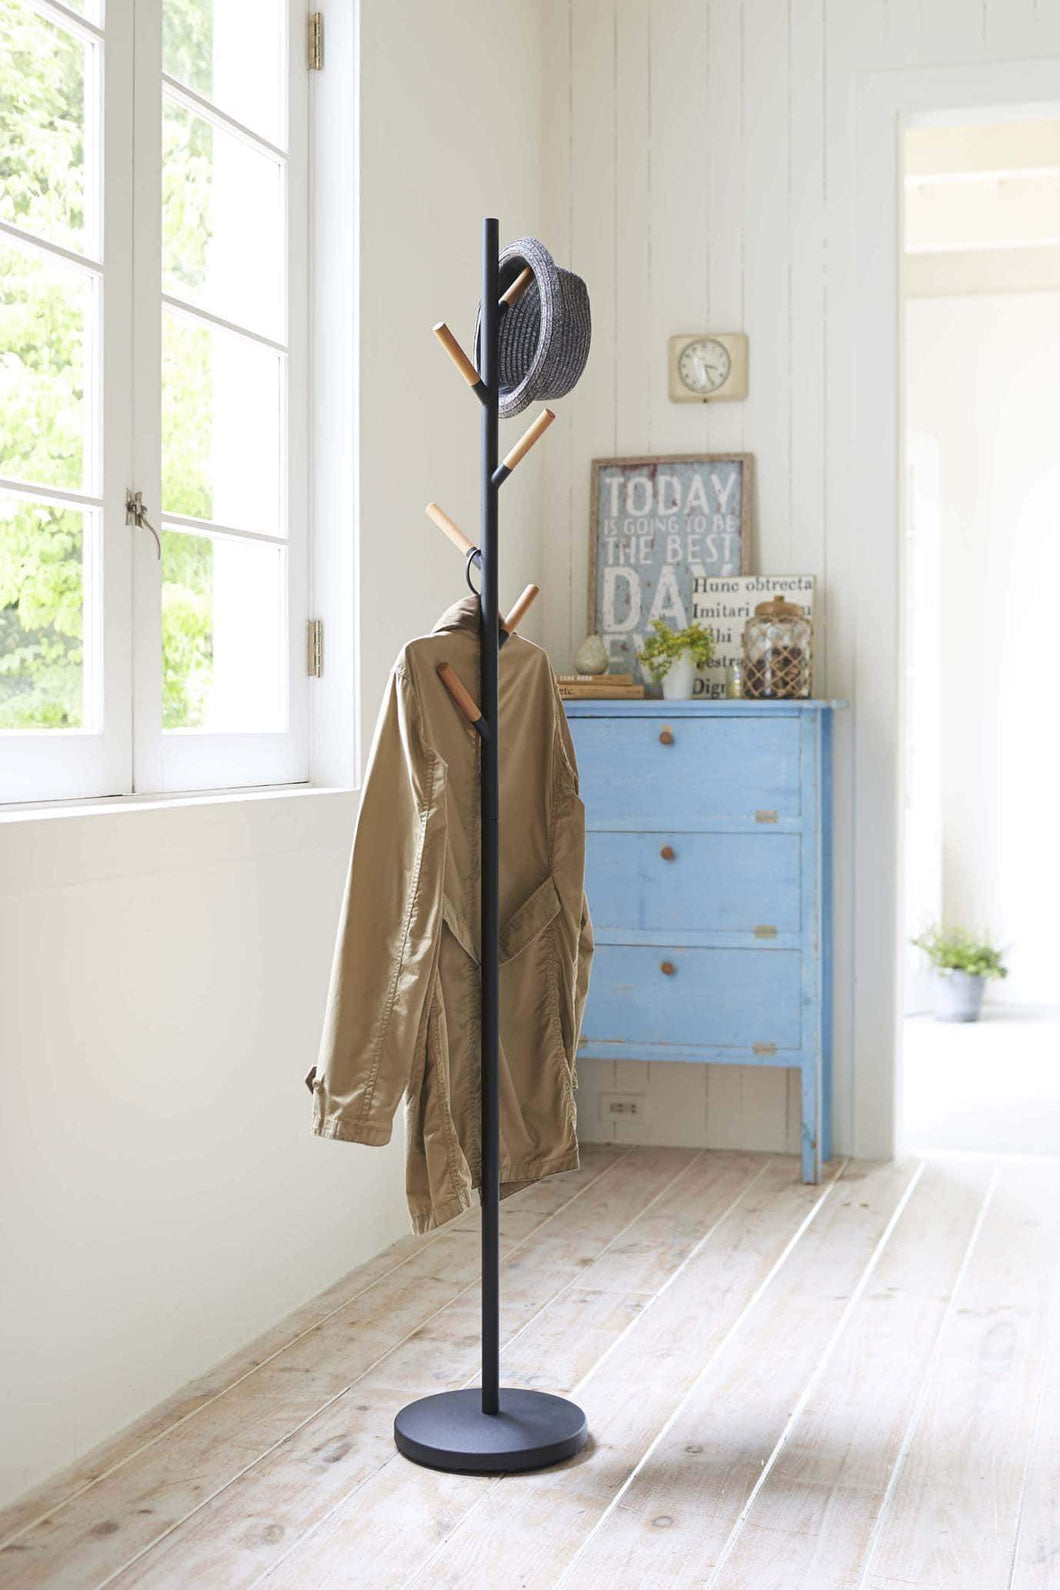 Related stainless steel wood modern coat tree rack in black finish